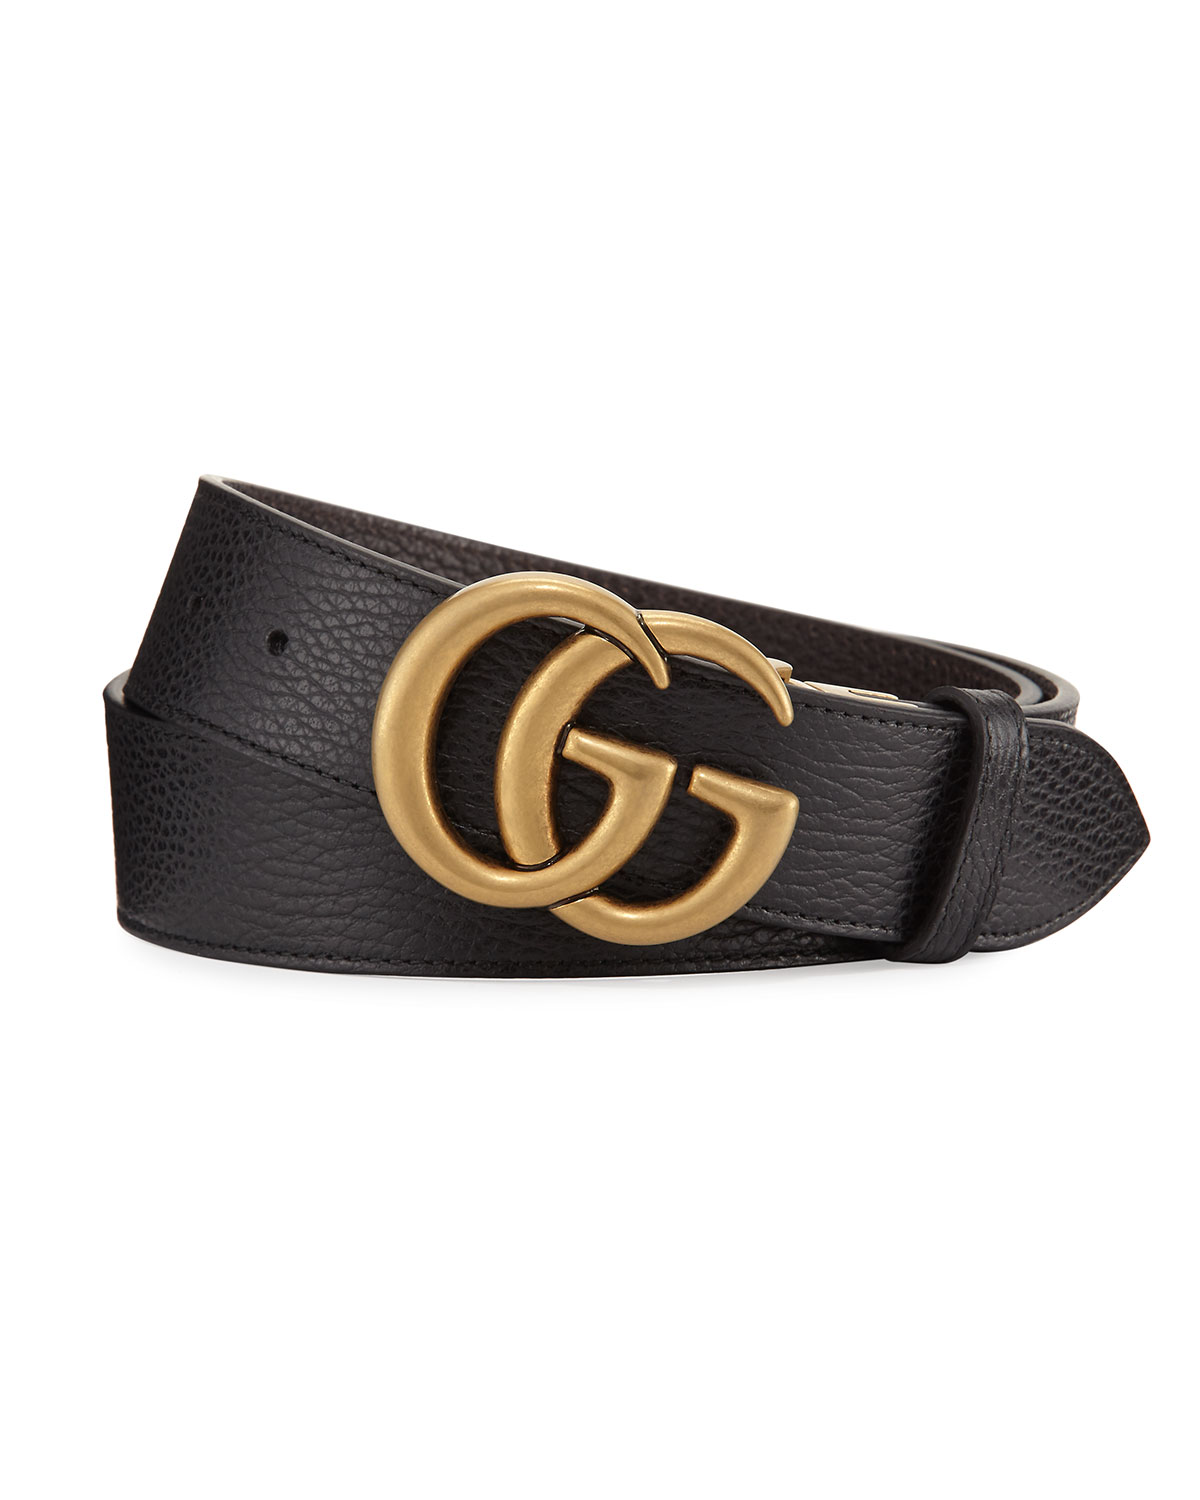 ca6857d3fffcb Gucci Reversible Leather Double G Belt